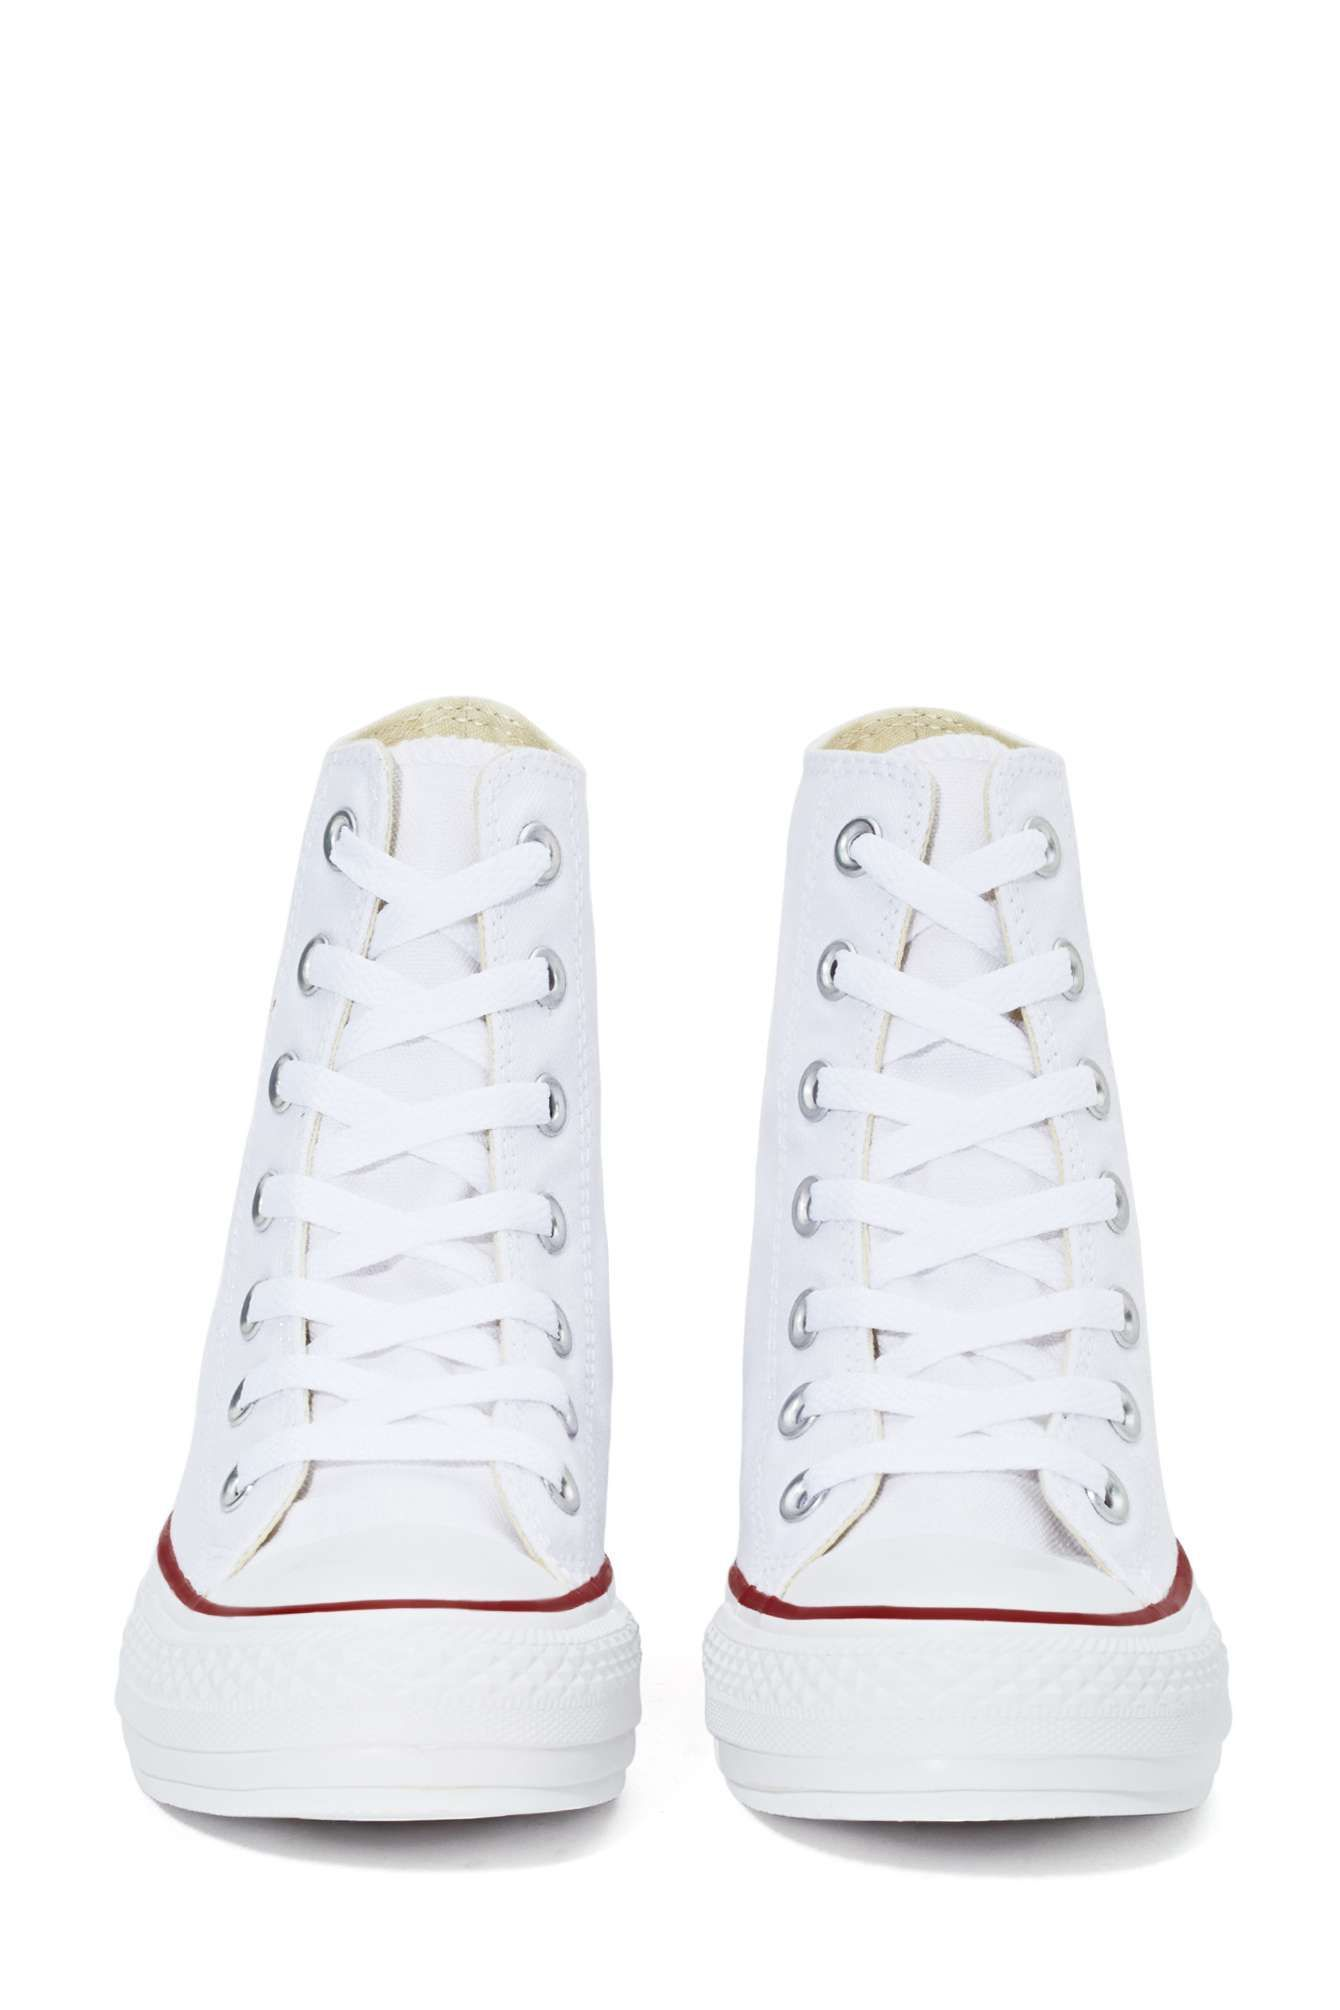 5854bbf431f5 Converse High Top Fancy Platform Sneakers